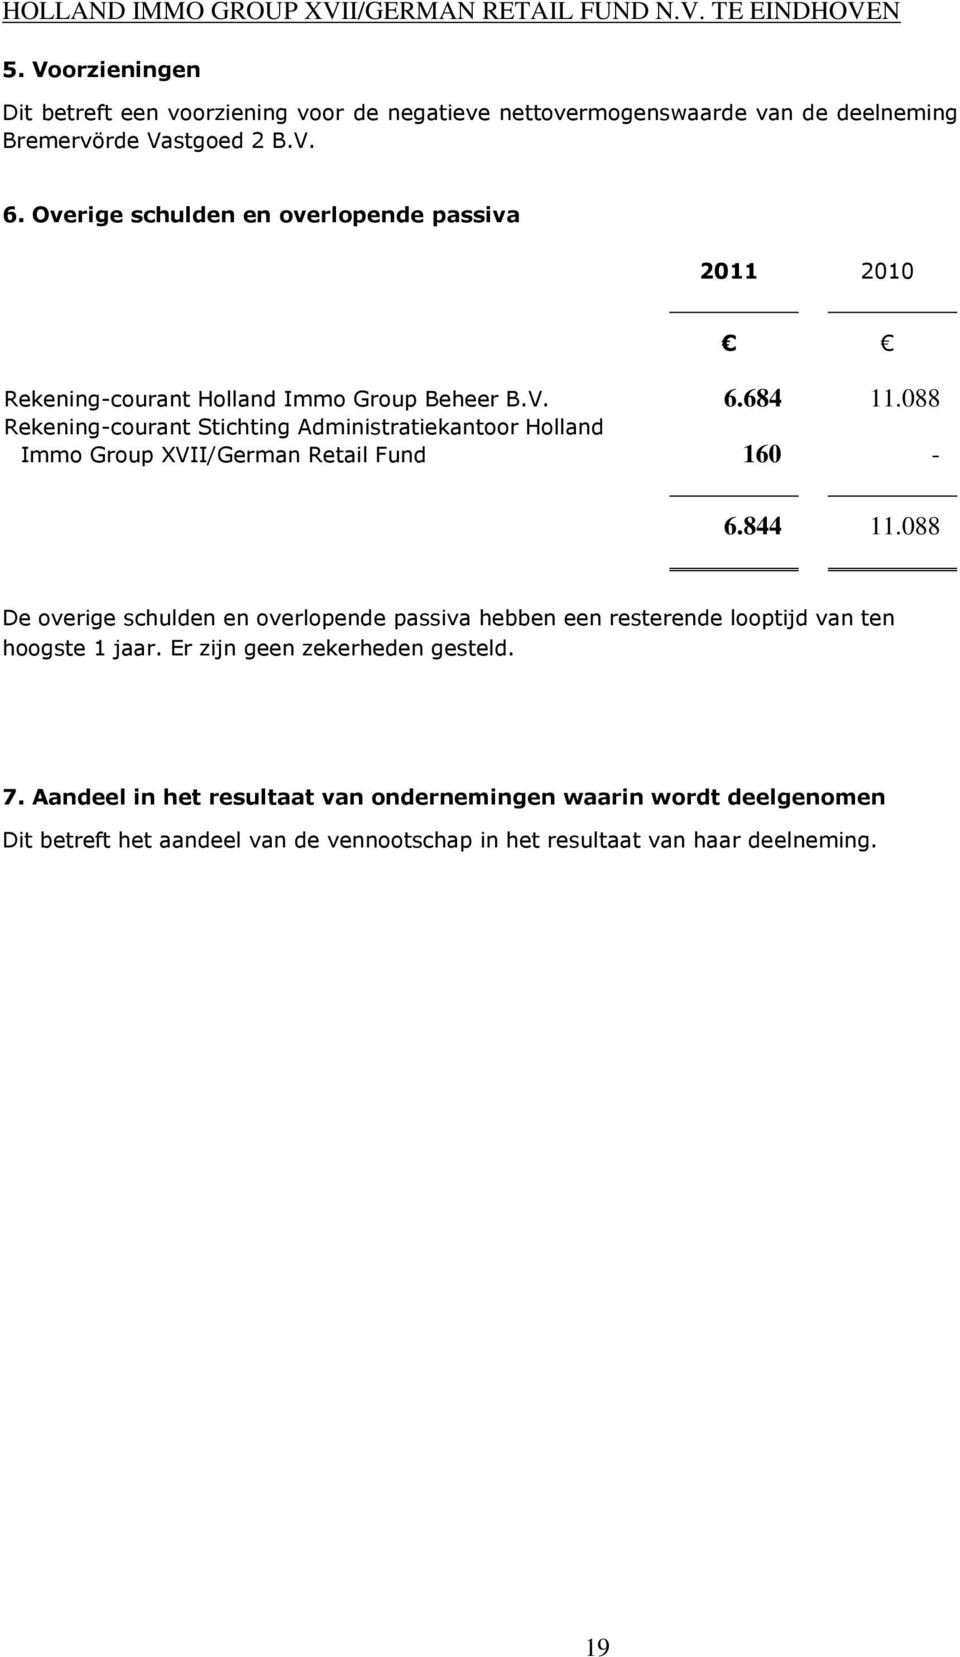 088 Rekening-courant Stichting Administratiekantoor Holland Immo Group XVII/German Retail Fund 160-6.844 11.